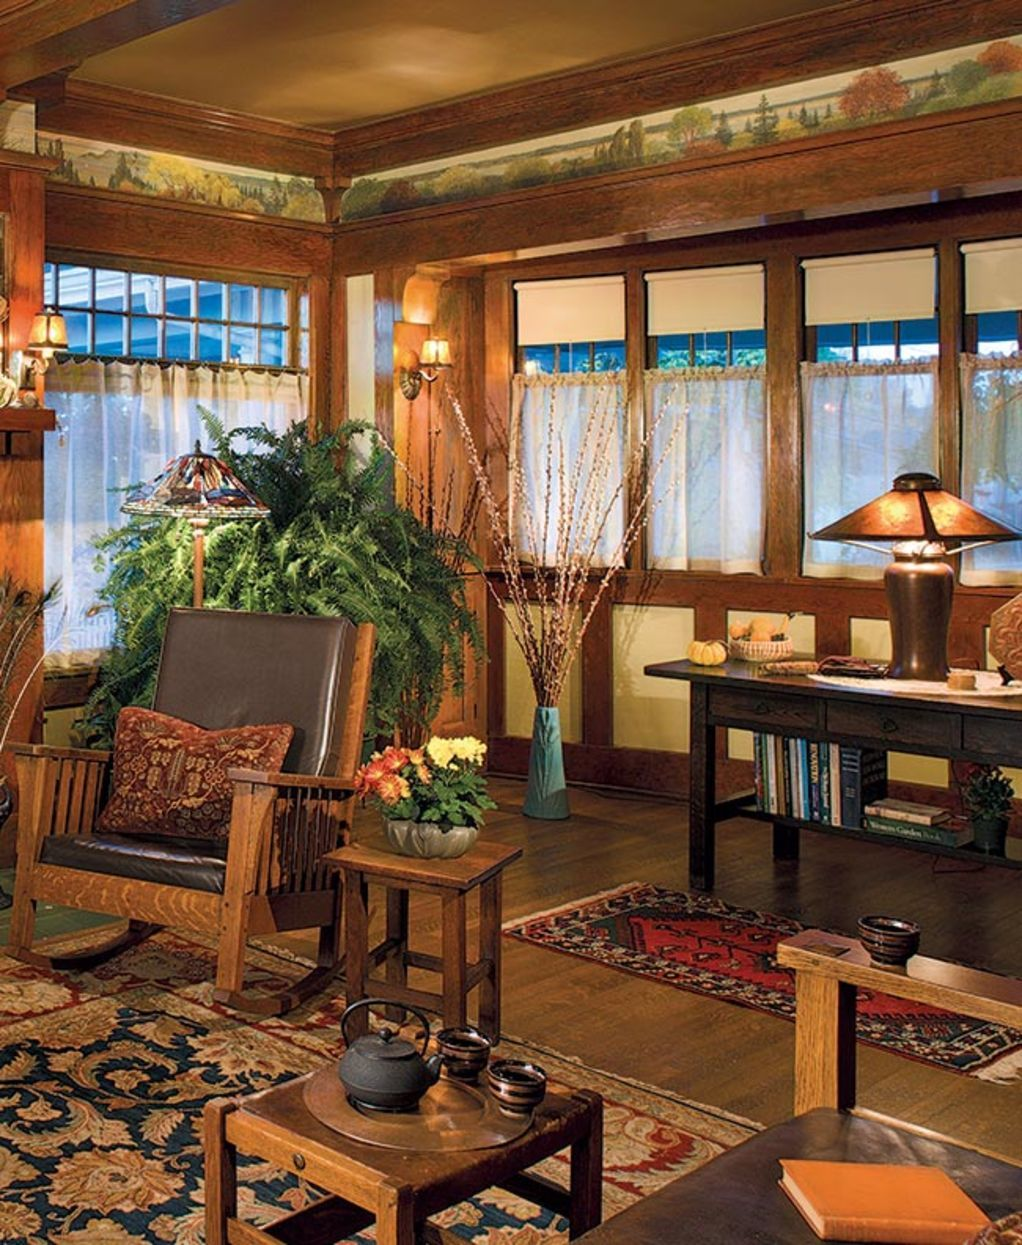 Bungalow Living Room: 3 Ideas For Simple Window Treatments